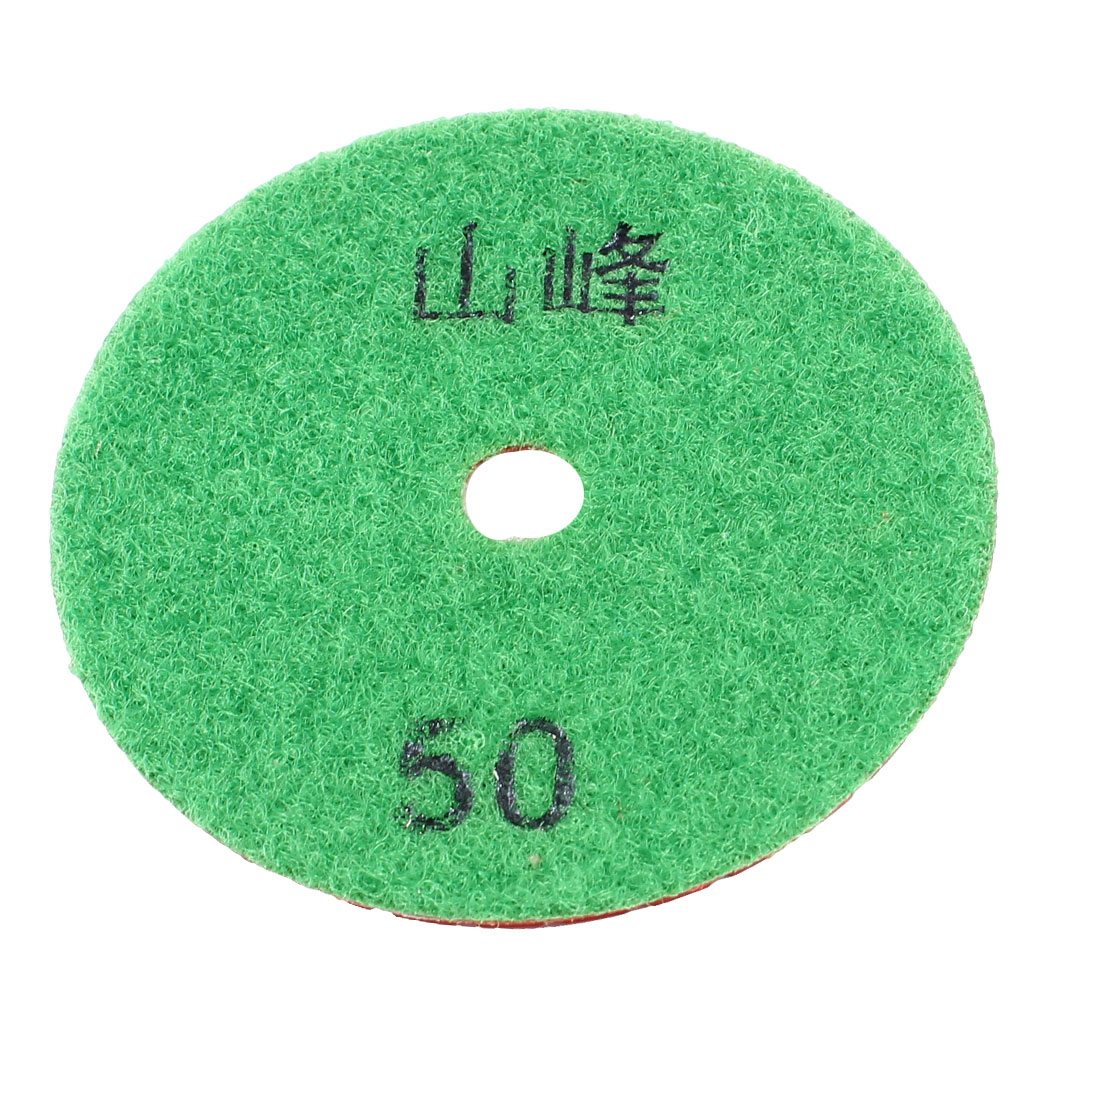 8cm Diameter 5mm Thickness 50 Grit Diamond Polishing Pad Green Red